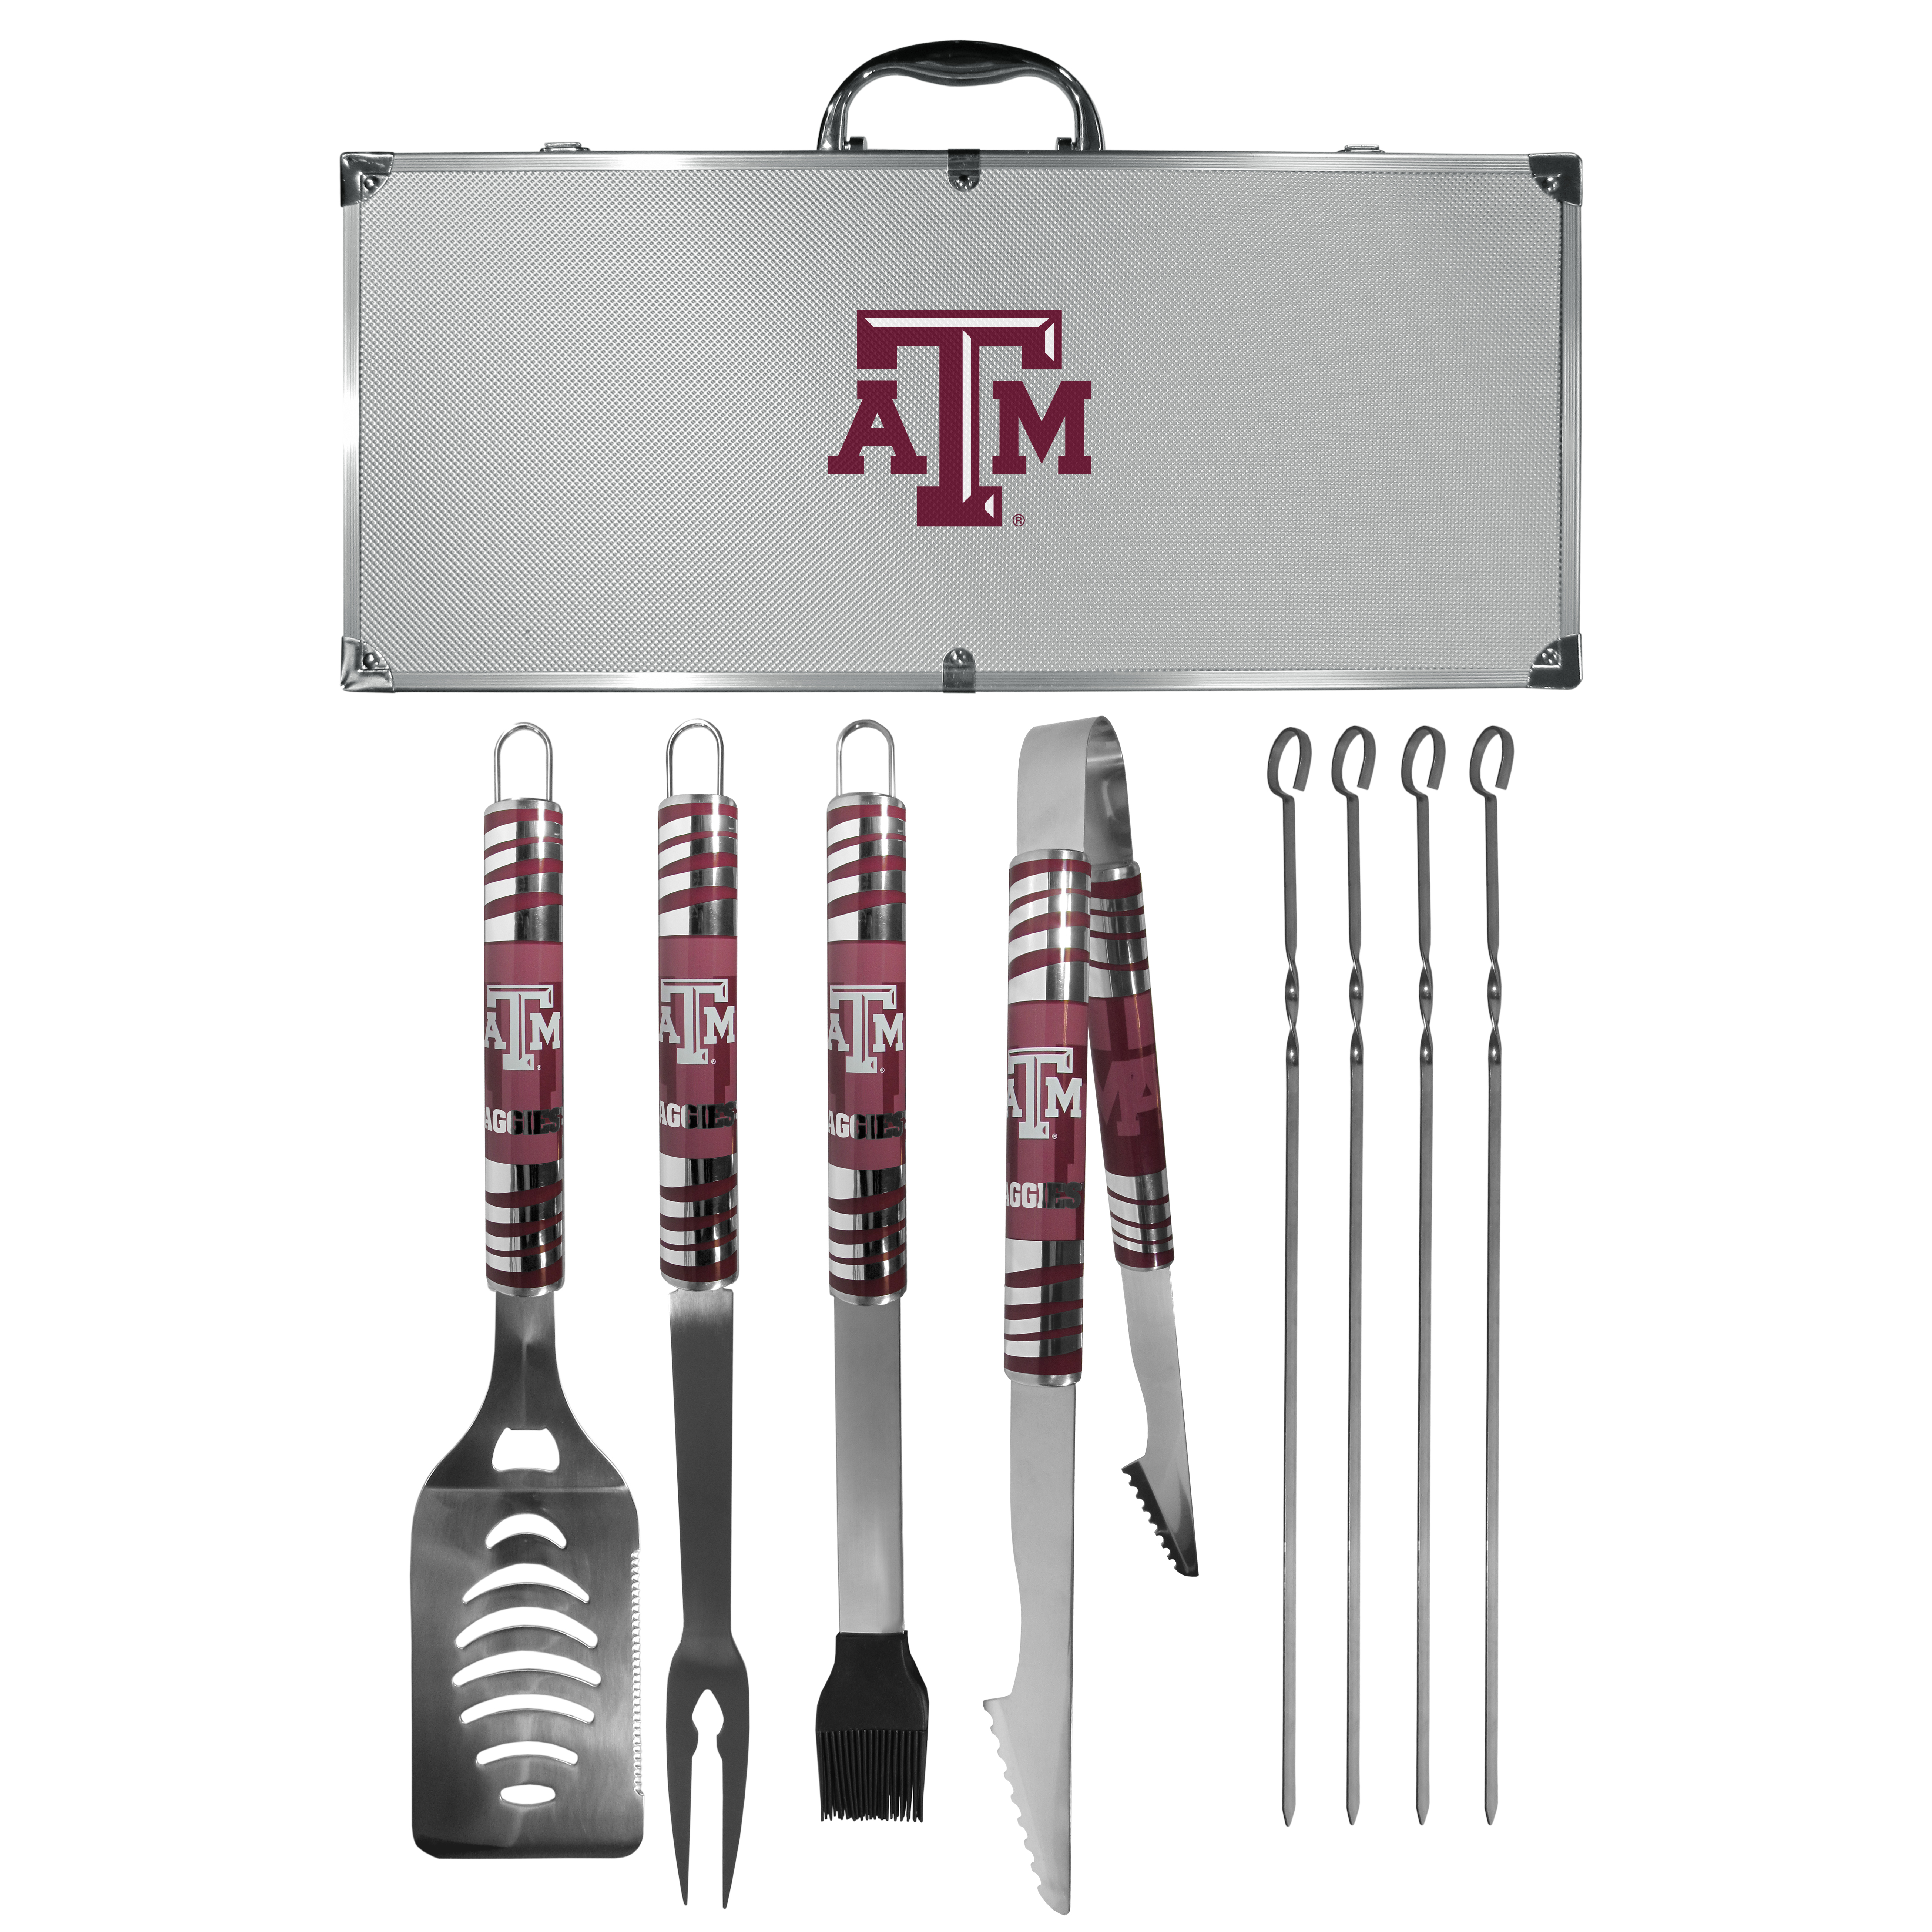 Texas A and M Aggies 8 pc Tailgater BBQ Set - This is the ultimate Texas A & M Aggies tailgate accessory! The high quality, 420 grade stainless steel tools are durable and well-made enough to make even the pickiest grill master smile. This complete grill accessory kit includes; 4 skewers, spatula with bottle opener and serrated knife edge, basting brush, tongs and a fork. The 18 inch metal carrying case is perfect for great outdoor use making grilling an ease while camping, tailgating or while having a game day party on your patio. The tools are 17 inches long and feature vivid team graphics. The metal case features a large team emblem with exceptional detail. This high-end men's gift is sure to be a hit as a present on Father's Day or Christmas.